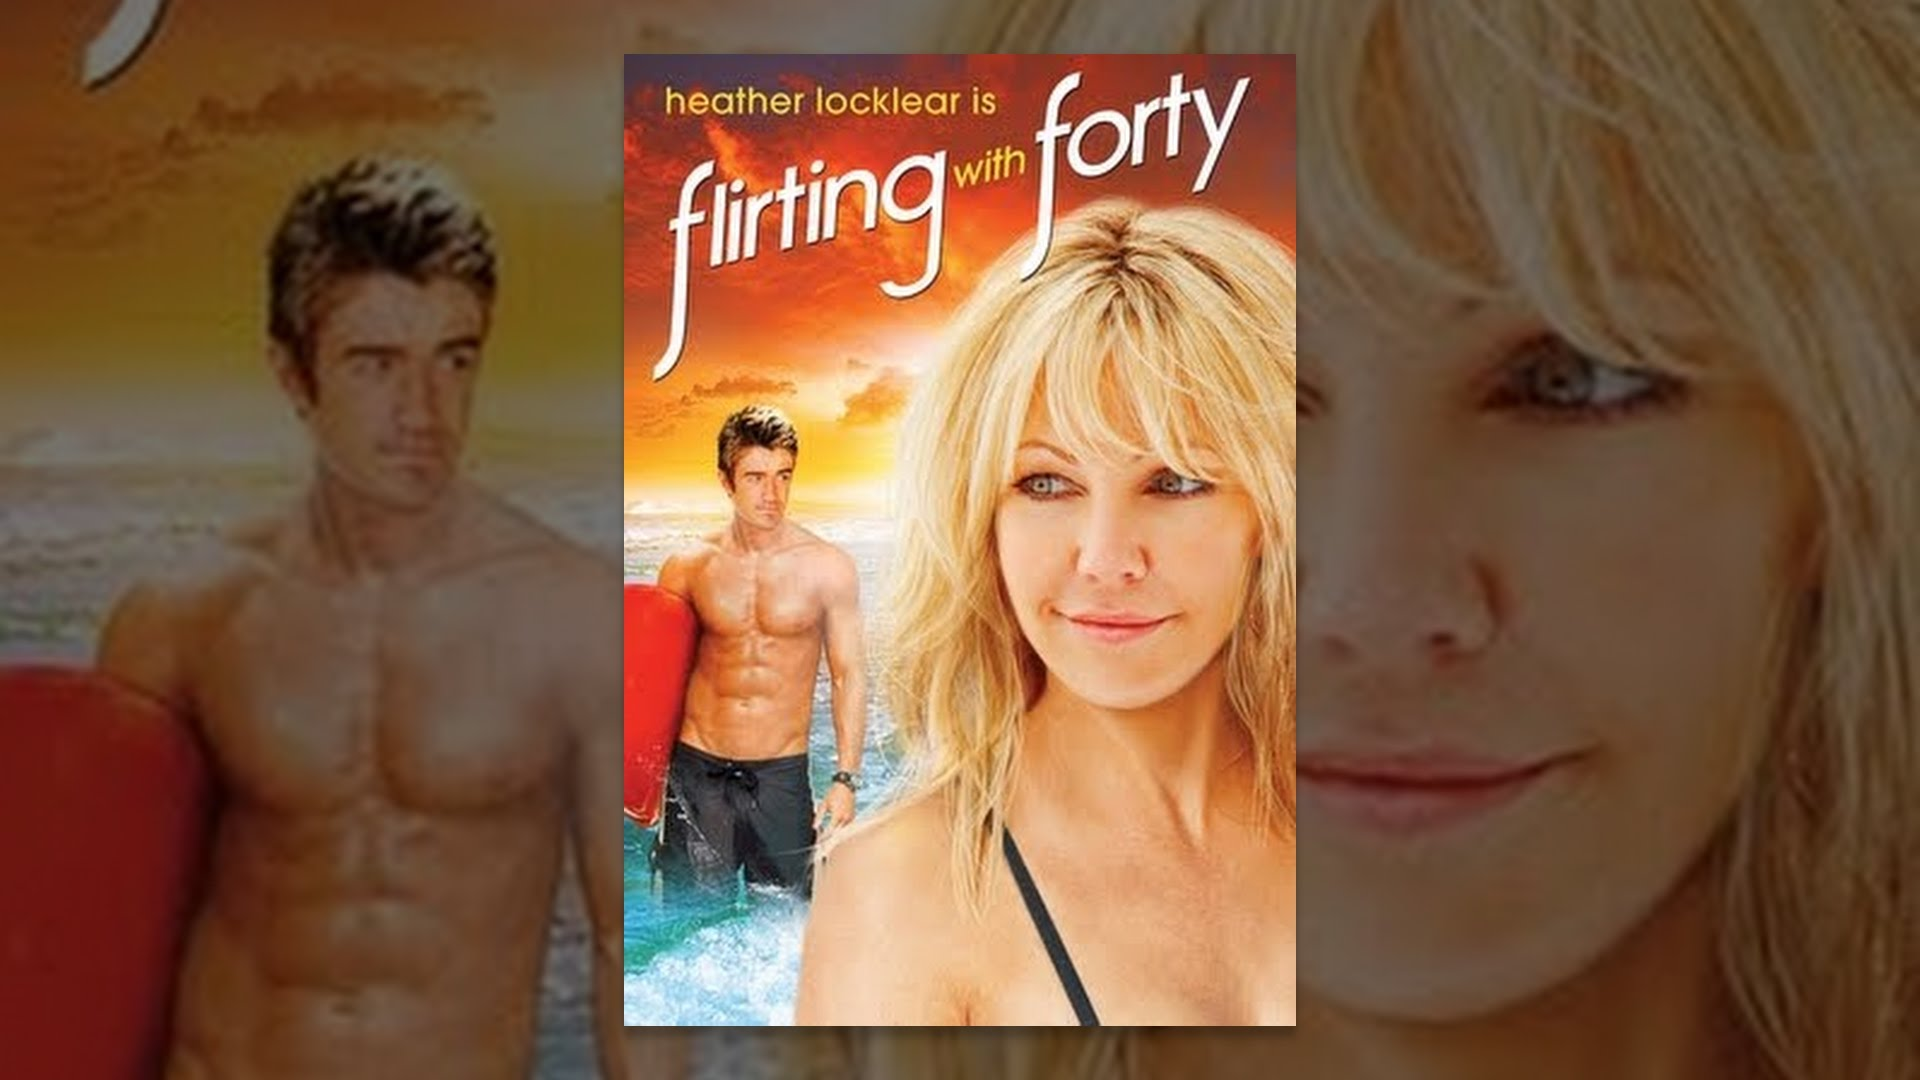 flirting with forty heather locklear divorce photos 2016: